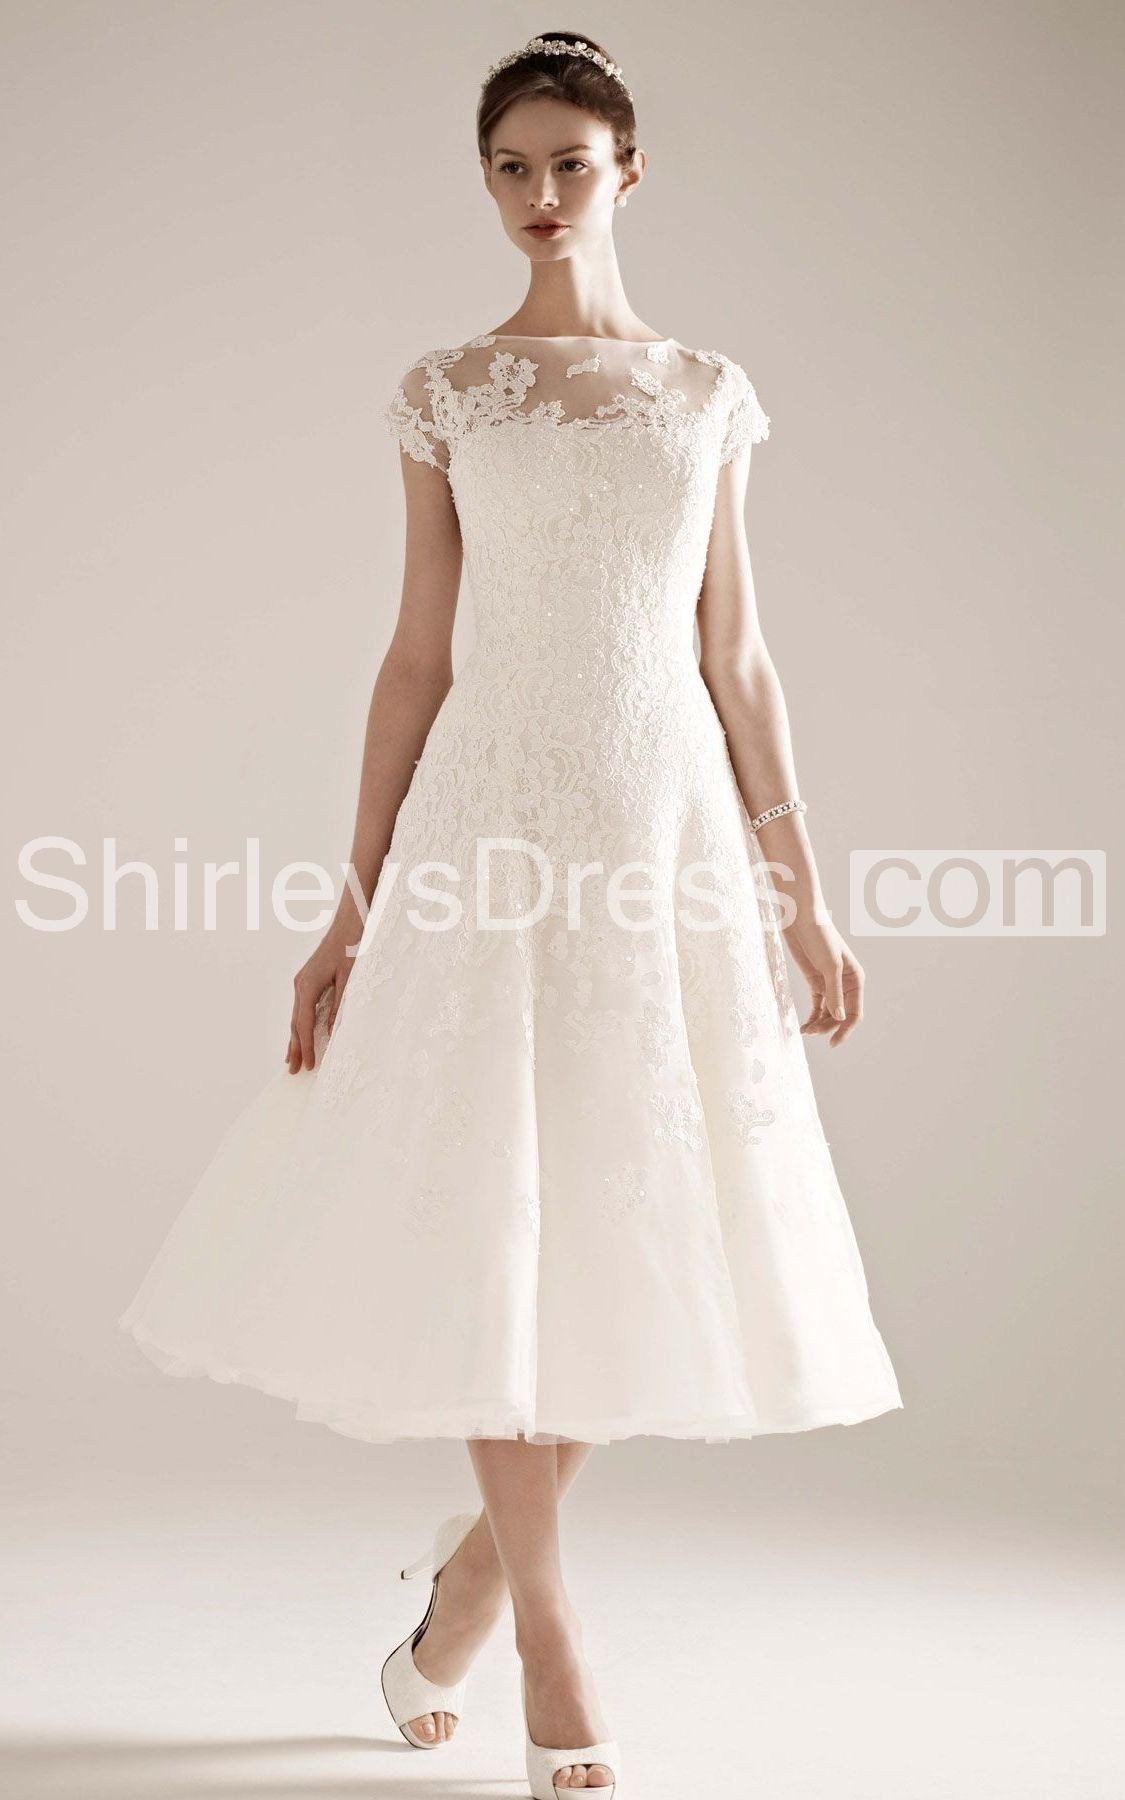 Modern capsleeve dress with illusion neckline and beaded lace